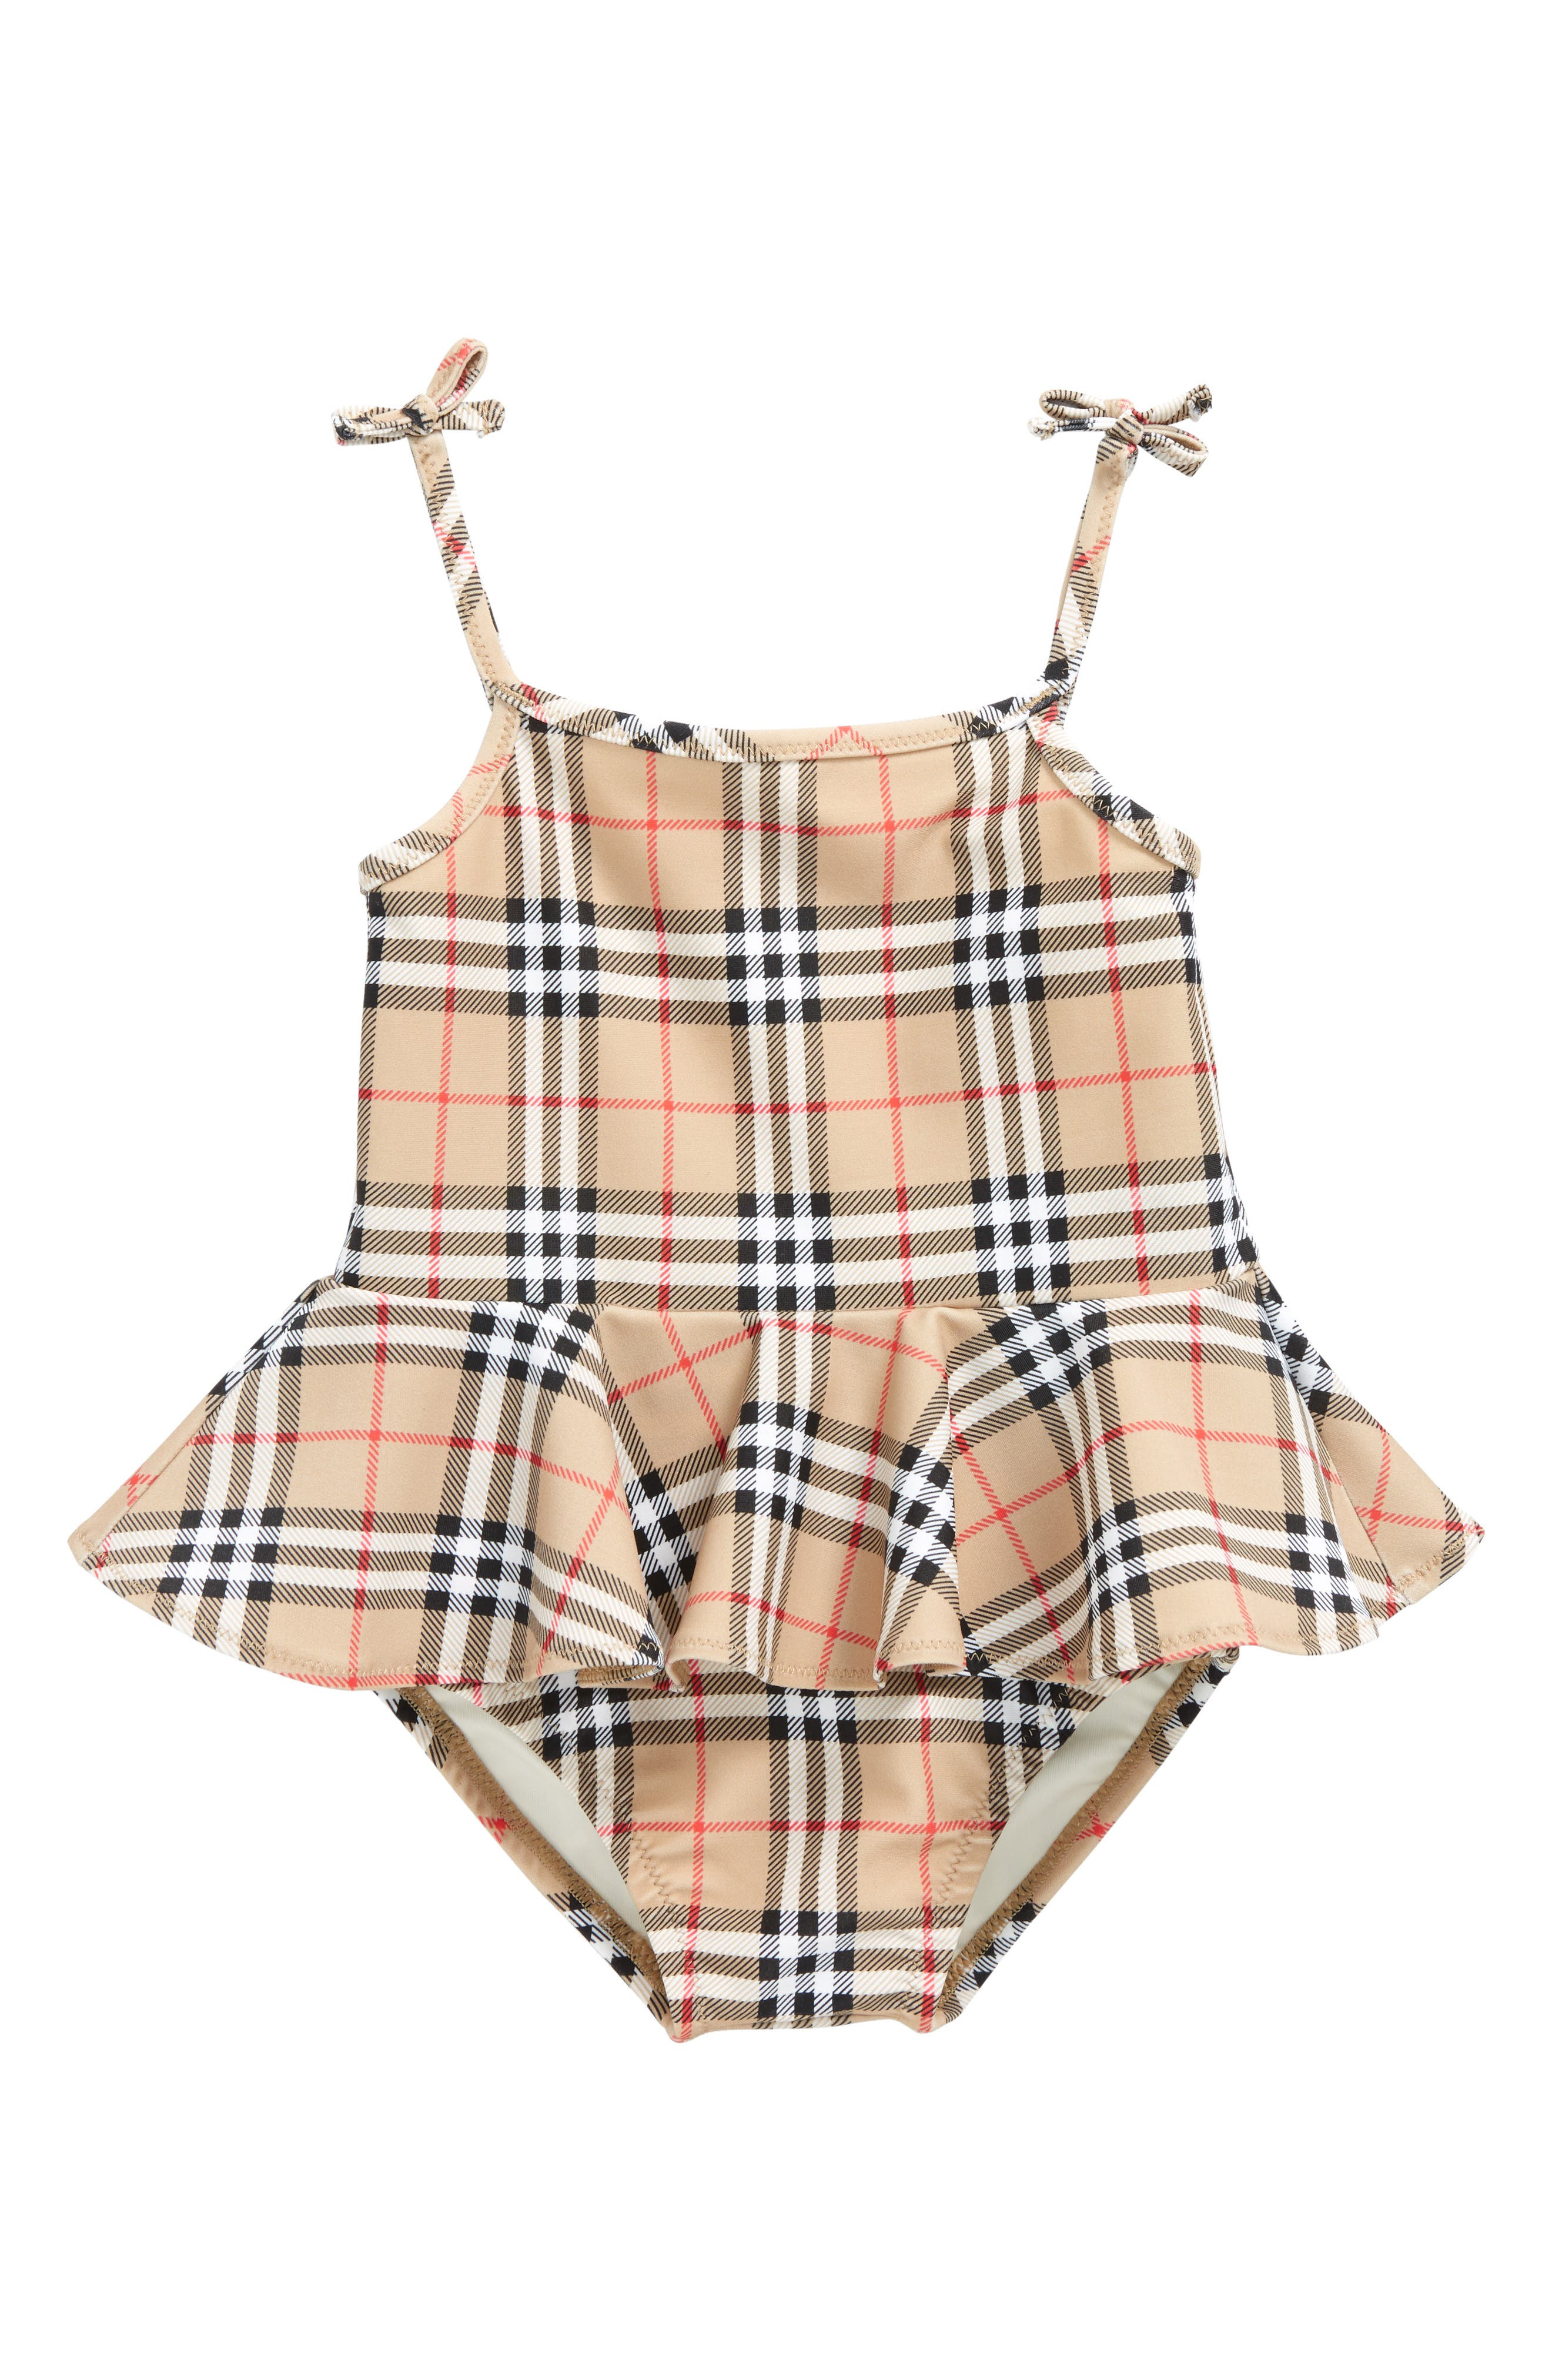 Luella Check Skirted One-Piece Swimsuit,                             Main thumbnail 1, color,                             252